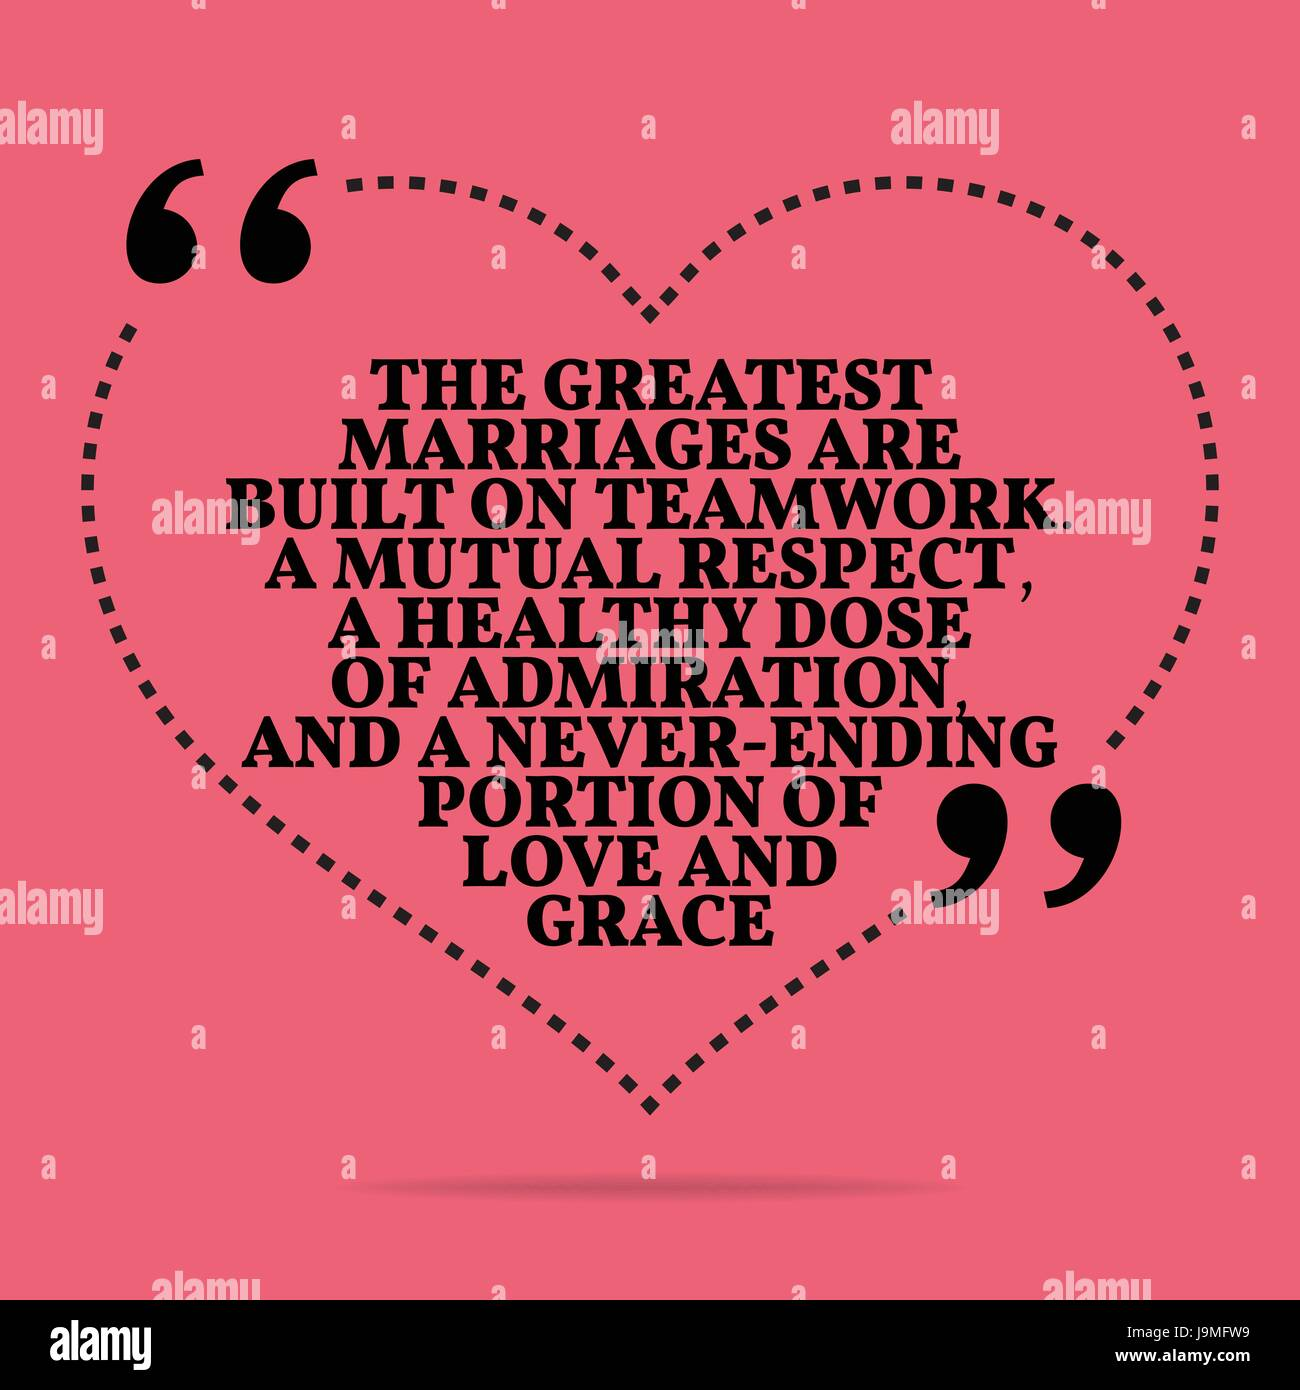 Inspirational Love Marriage Quote The Greatest Marriages Are Built On Teamwork A Mutual Respect Healthy Dose Of Admiration And Never Ending Po